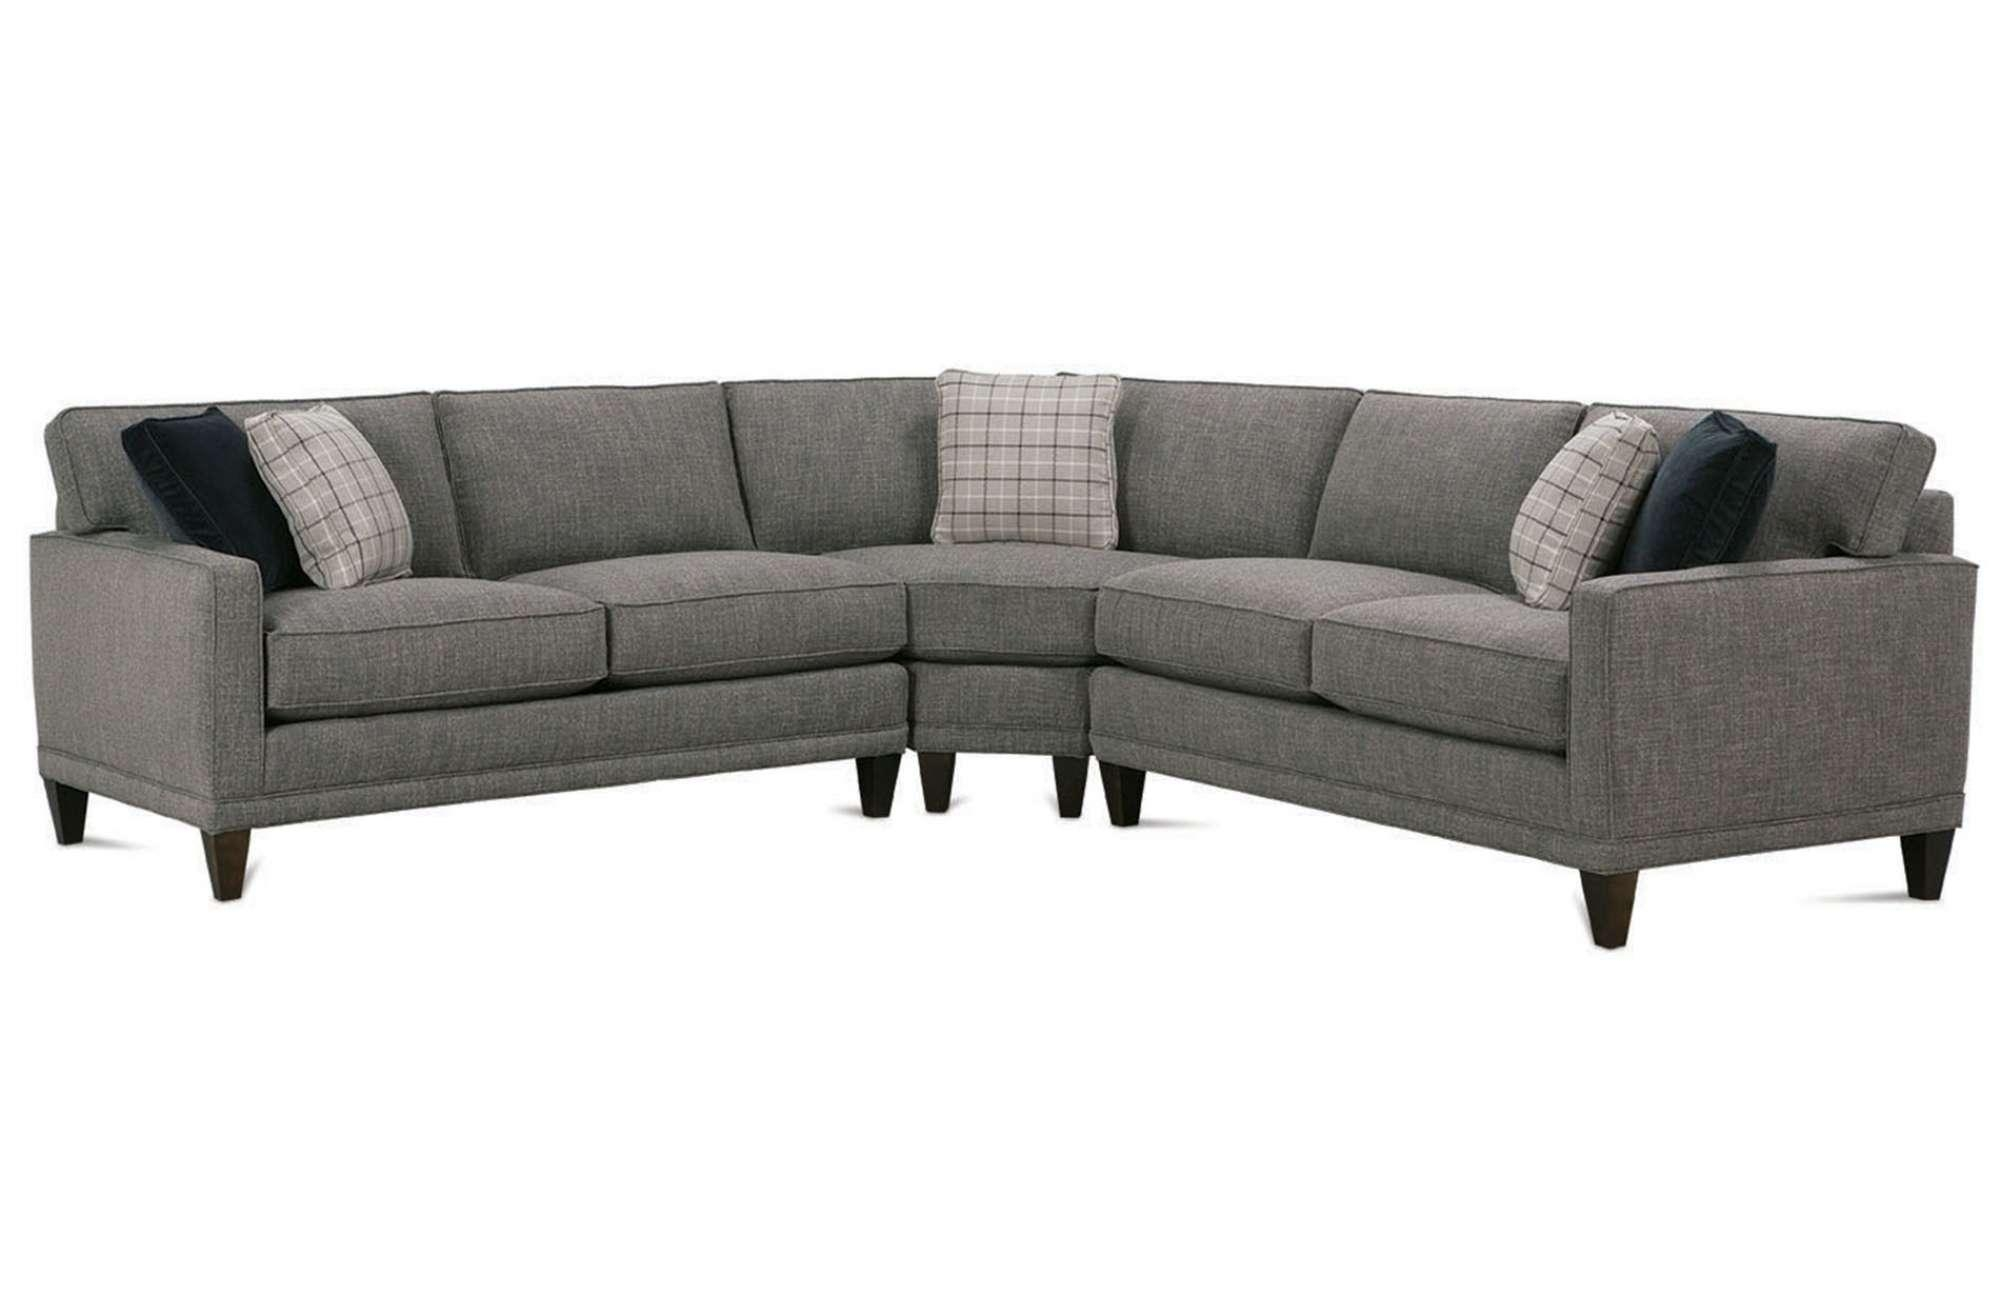 Townsend Sectionalrowe Furniture With Rowe Sectional Sofas (View 2 of 20)